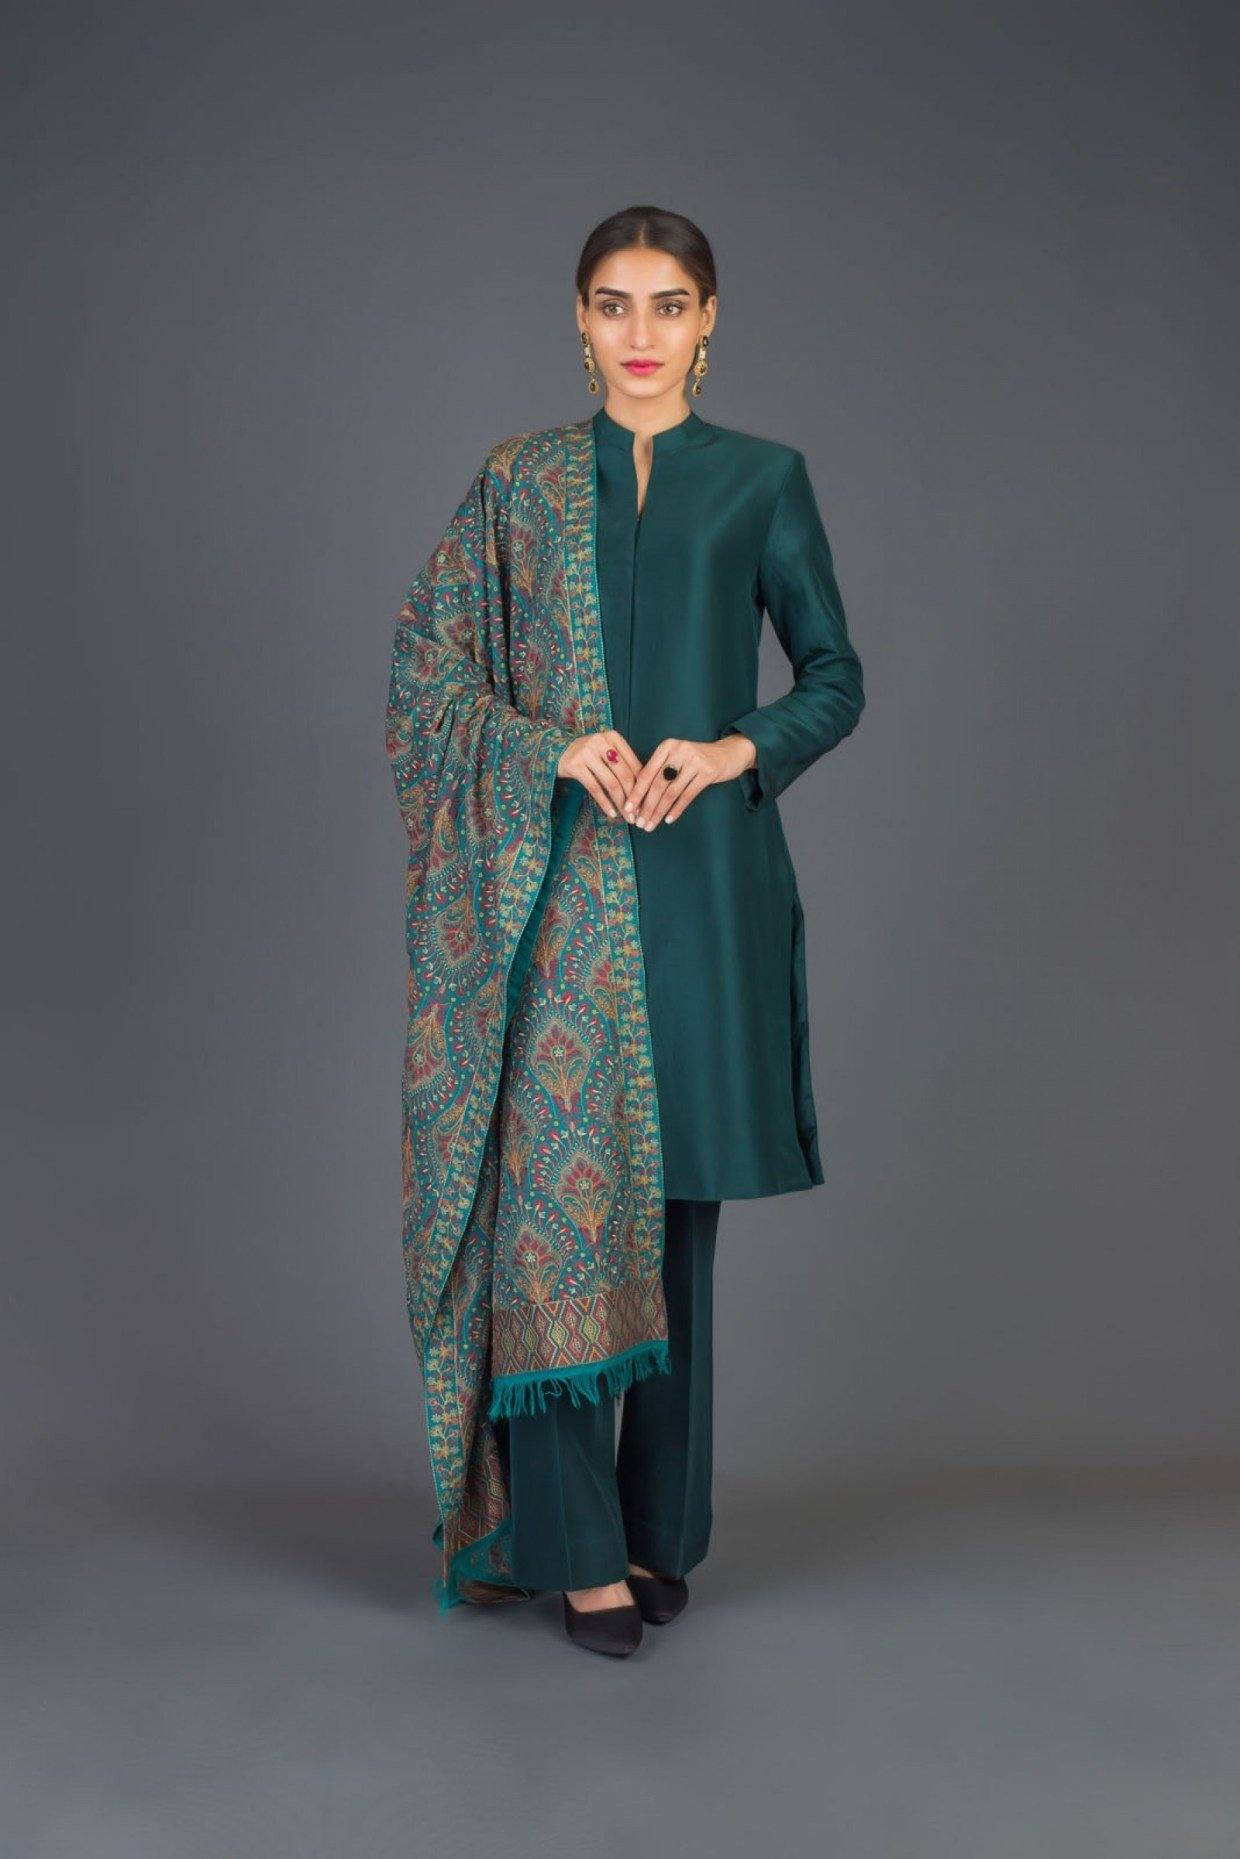 SARINNAH D70- FORMAL HEAVY EMBROIDED KARANDI LAWN SHAWL. - gracestore.pk